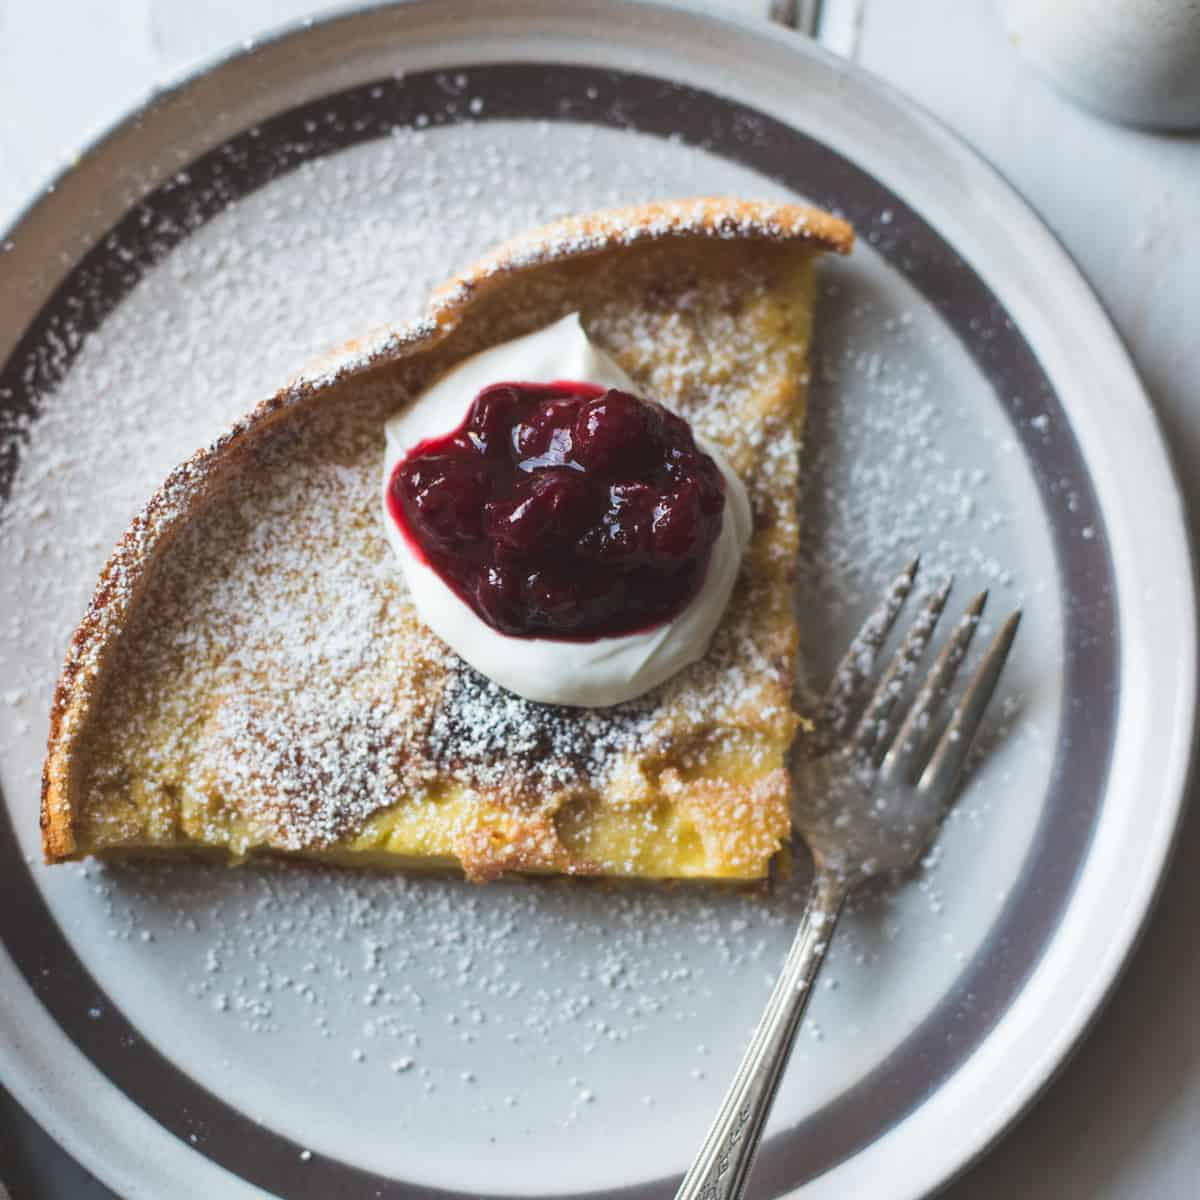 Gluten-Free Sorghum Buttermilk Dutch Baby, Maple Cranberry Sauce on crepe